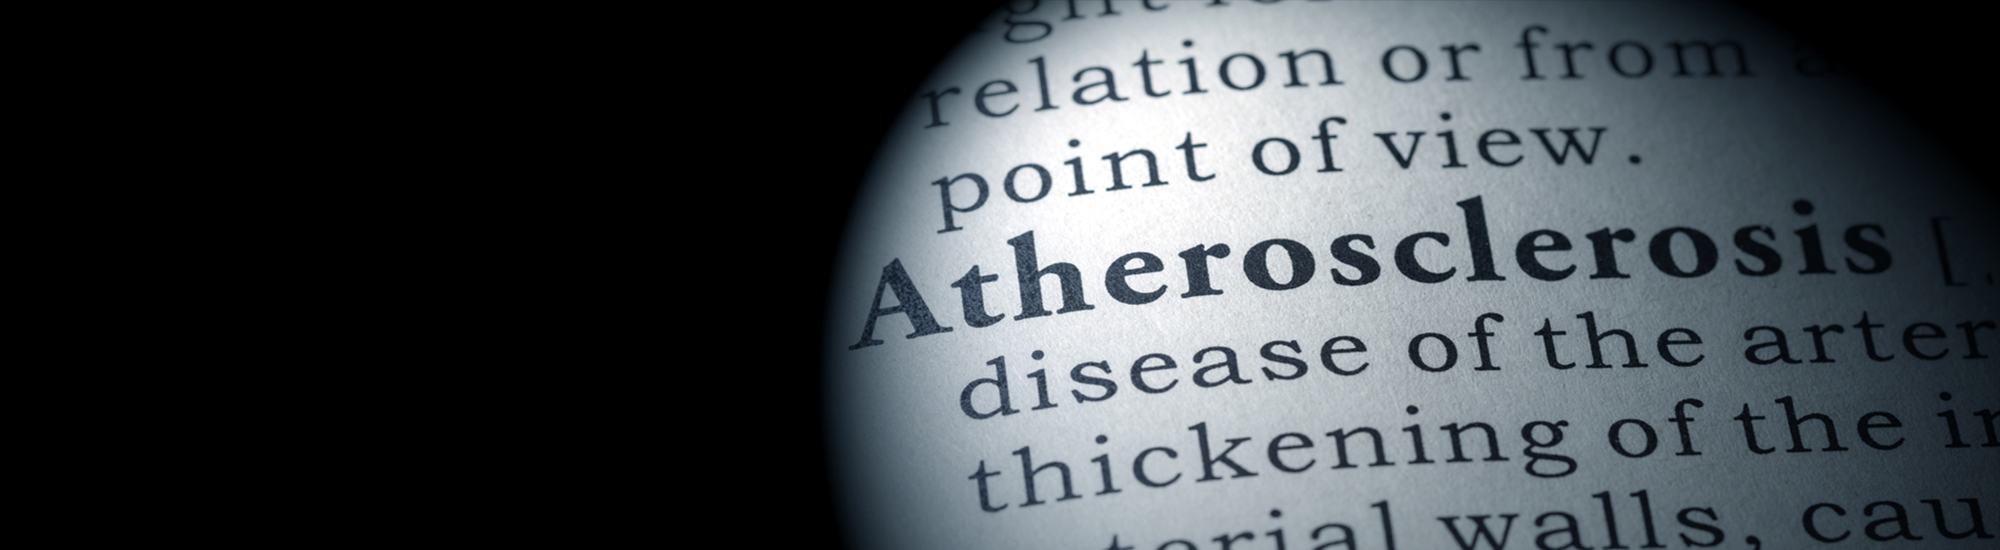 Ayurvedic treatment for Atherosclerosis References